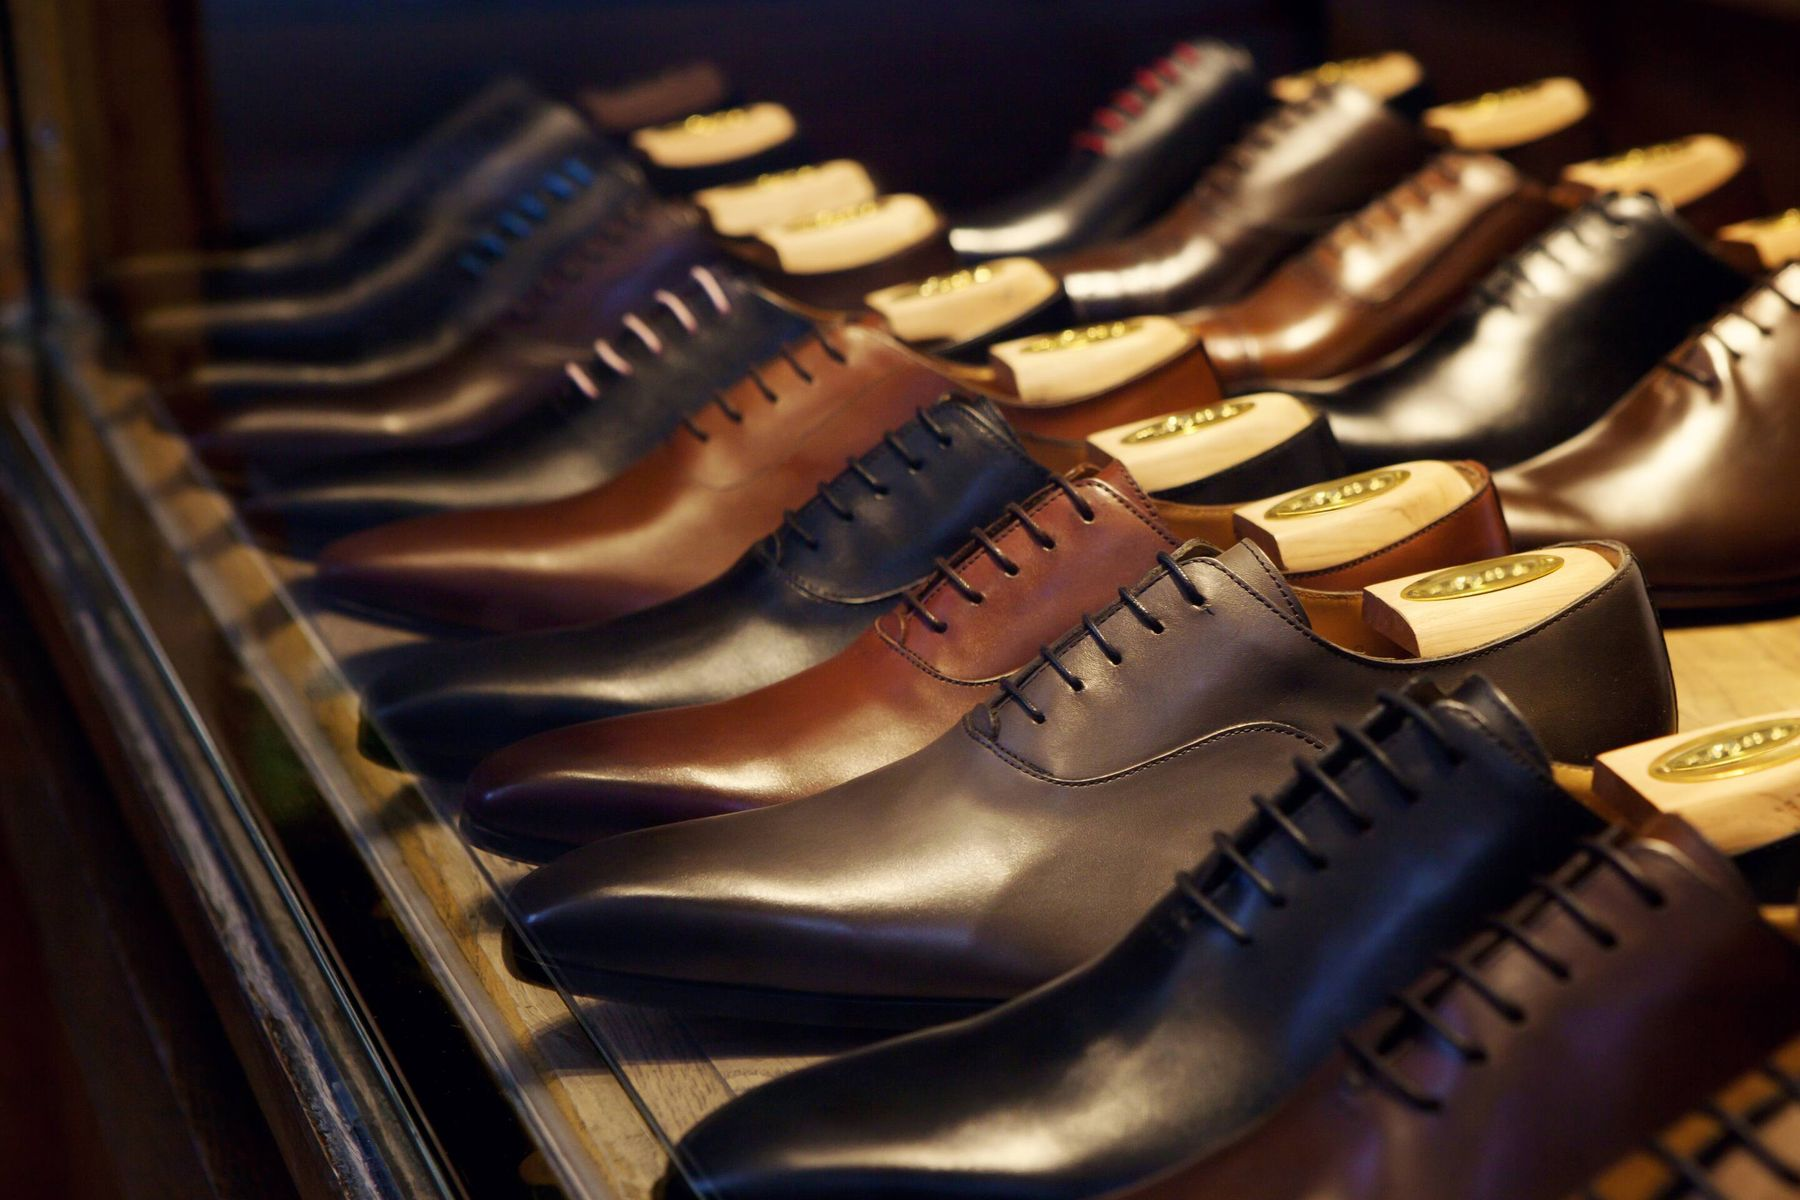 Smart Ideas to Keep Your New Leather Shoes Looking New for Longer